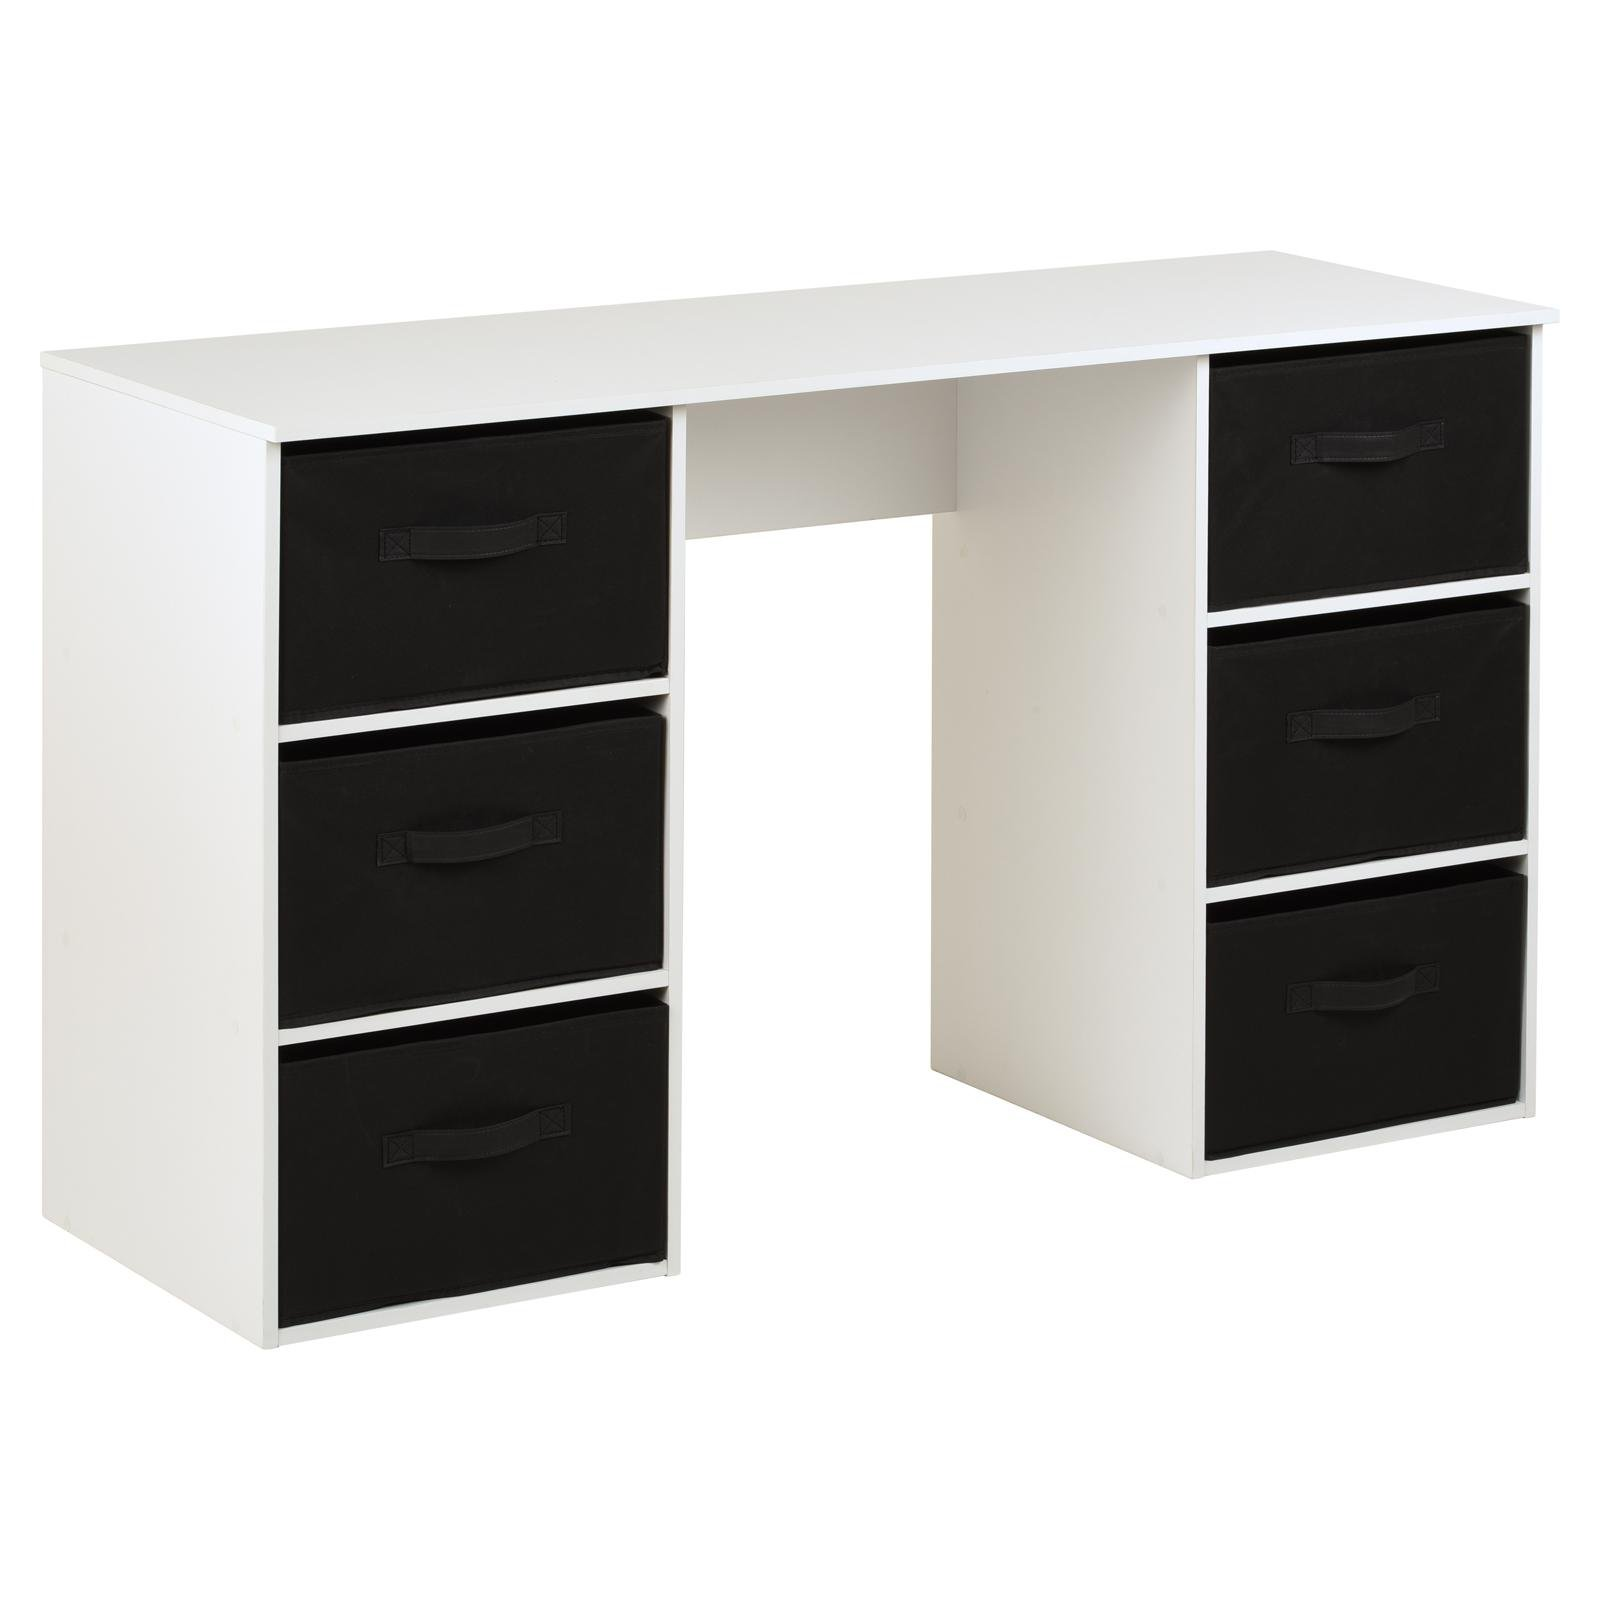 image-Hartleys Kids White Storage Desk & 6 Handled Box Drawers - Black